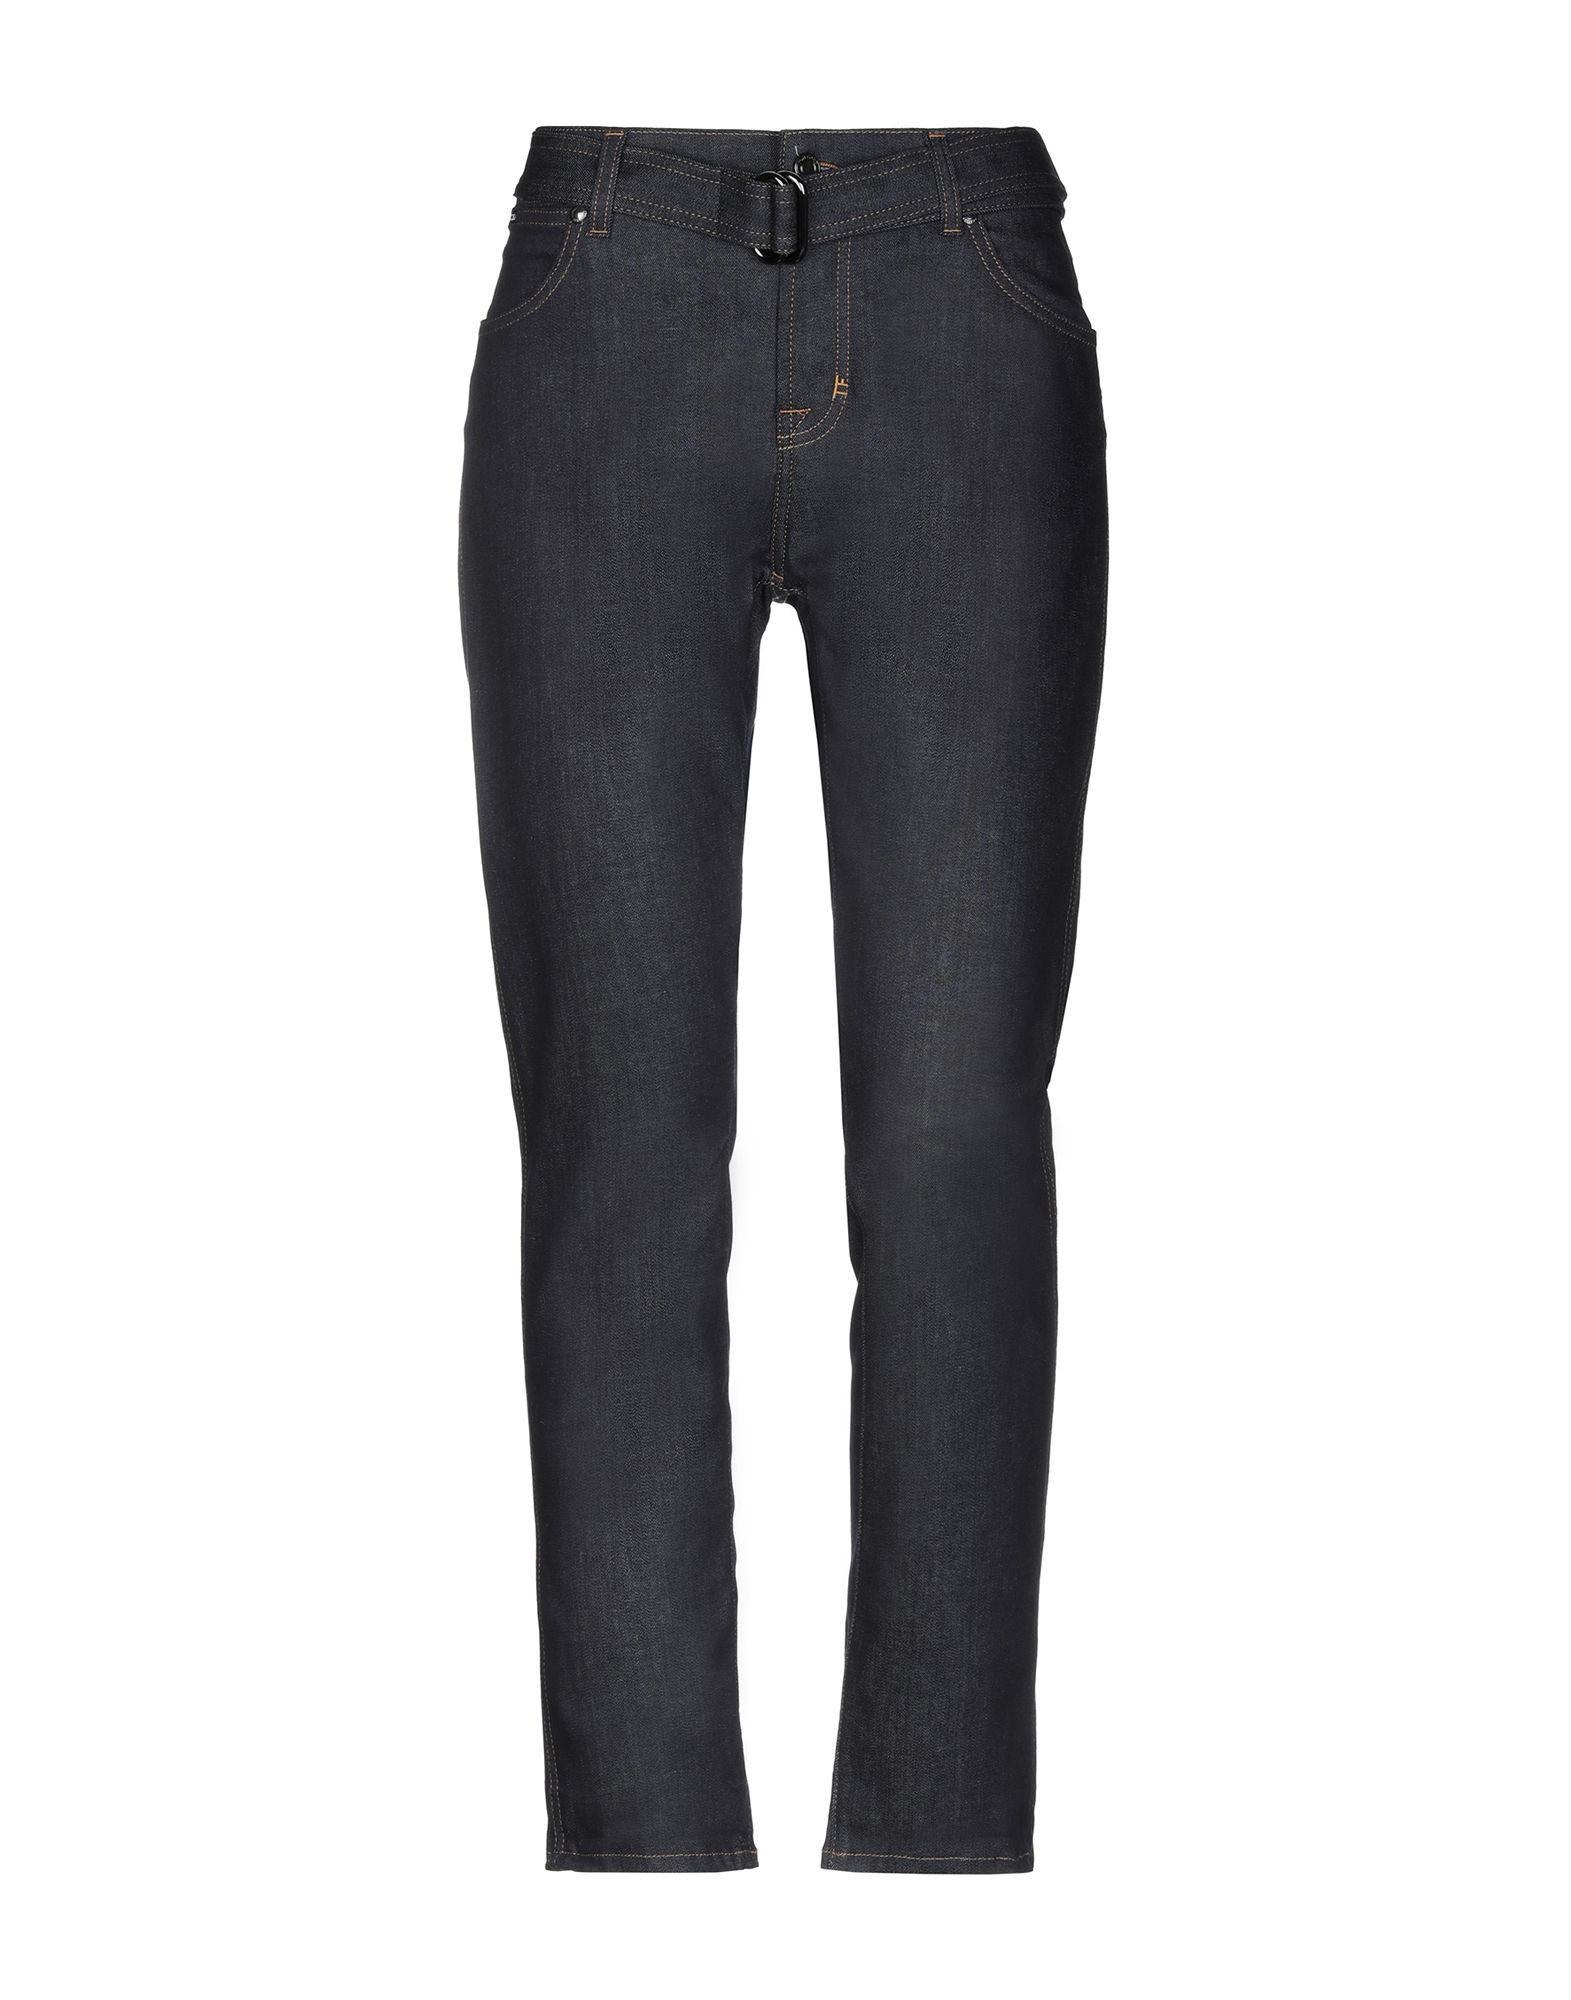 TOM FORD Denim pants - Item 42699416